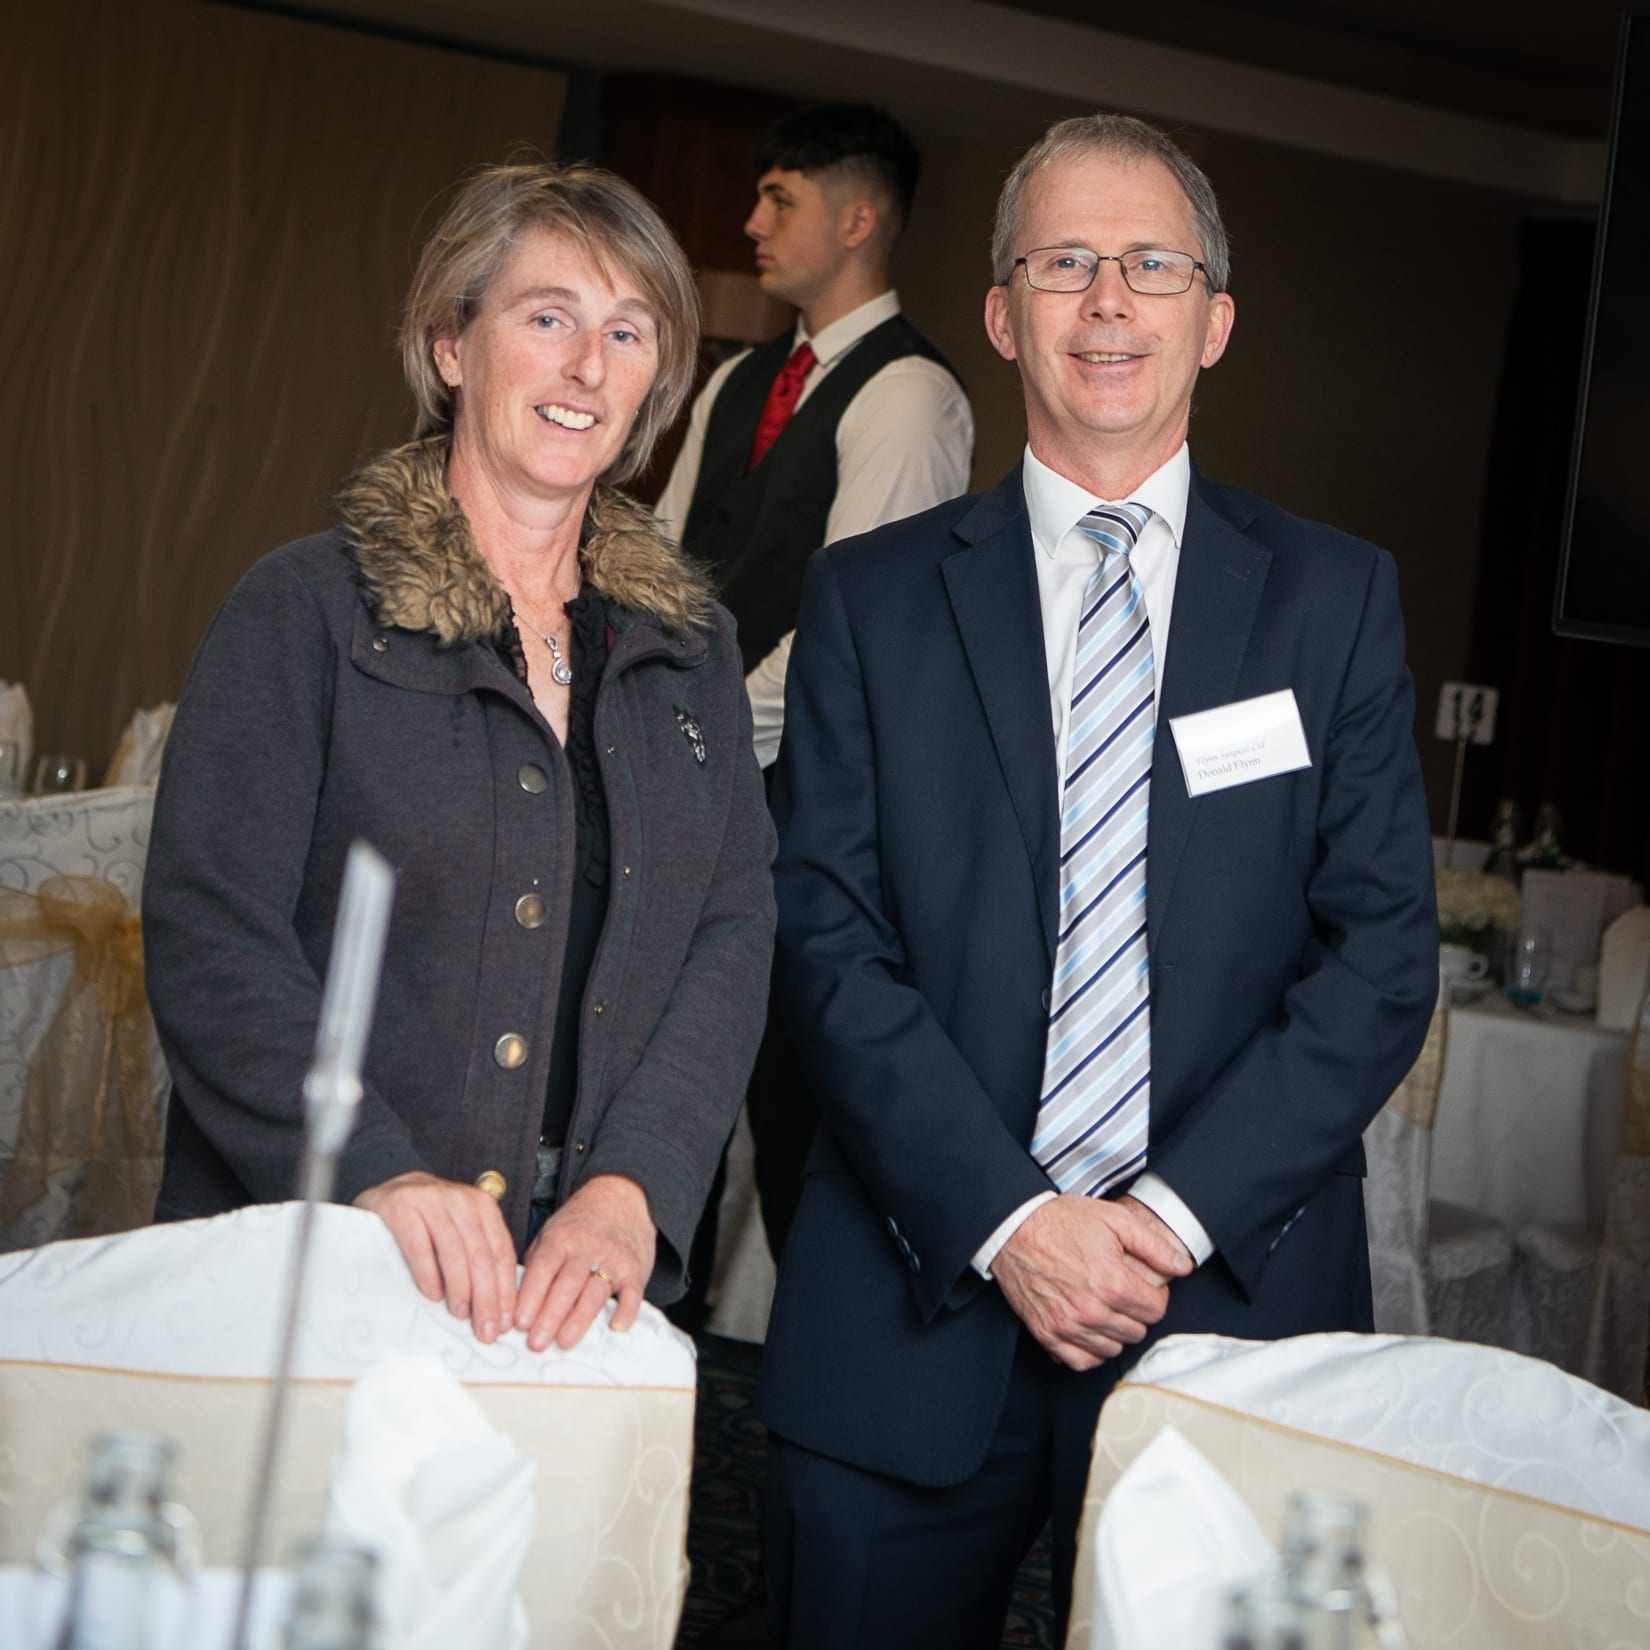 No repro fee-Limerick Chamber Autumn Luncheon which was held in The Savoy Hotel on Monday 23rd September - From Left to Right: Rosemary Larkin - New Vistas Healthcare, Don Fylnn - Flynn Surgical Photo credit Shauna Kennedy